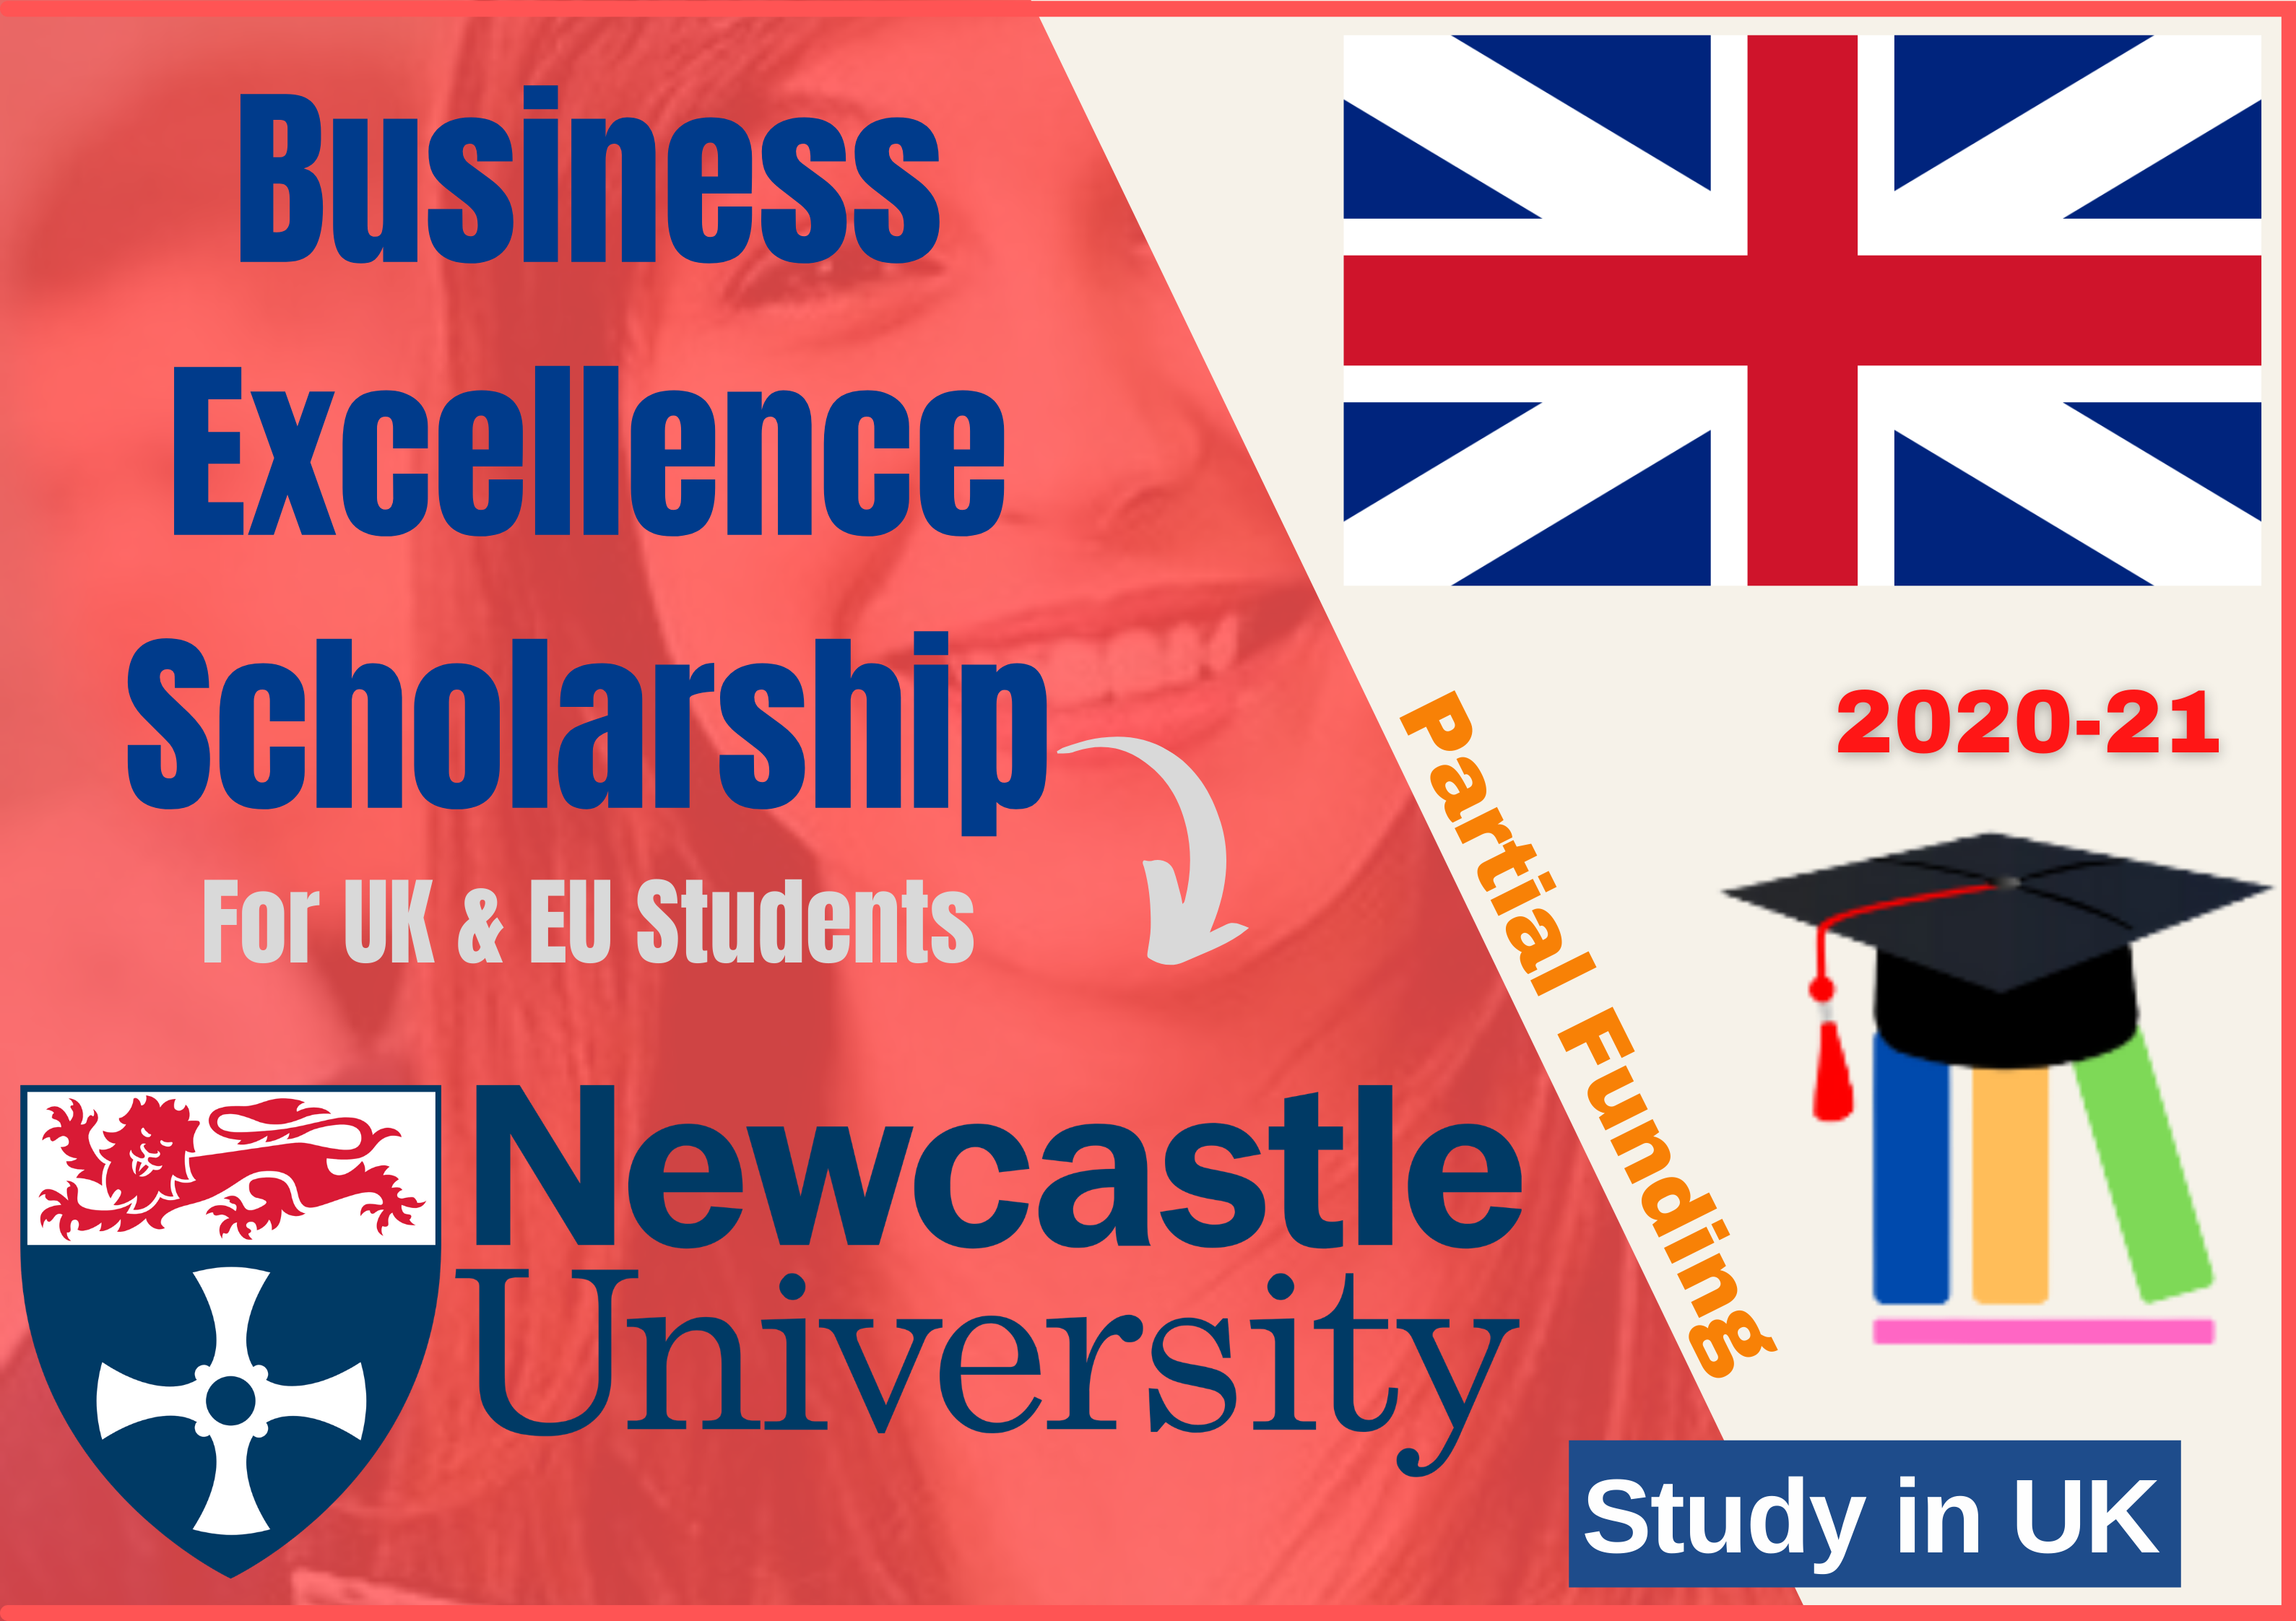 Business Excellence Scholarship 2020-21 at Newcastle University UK